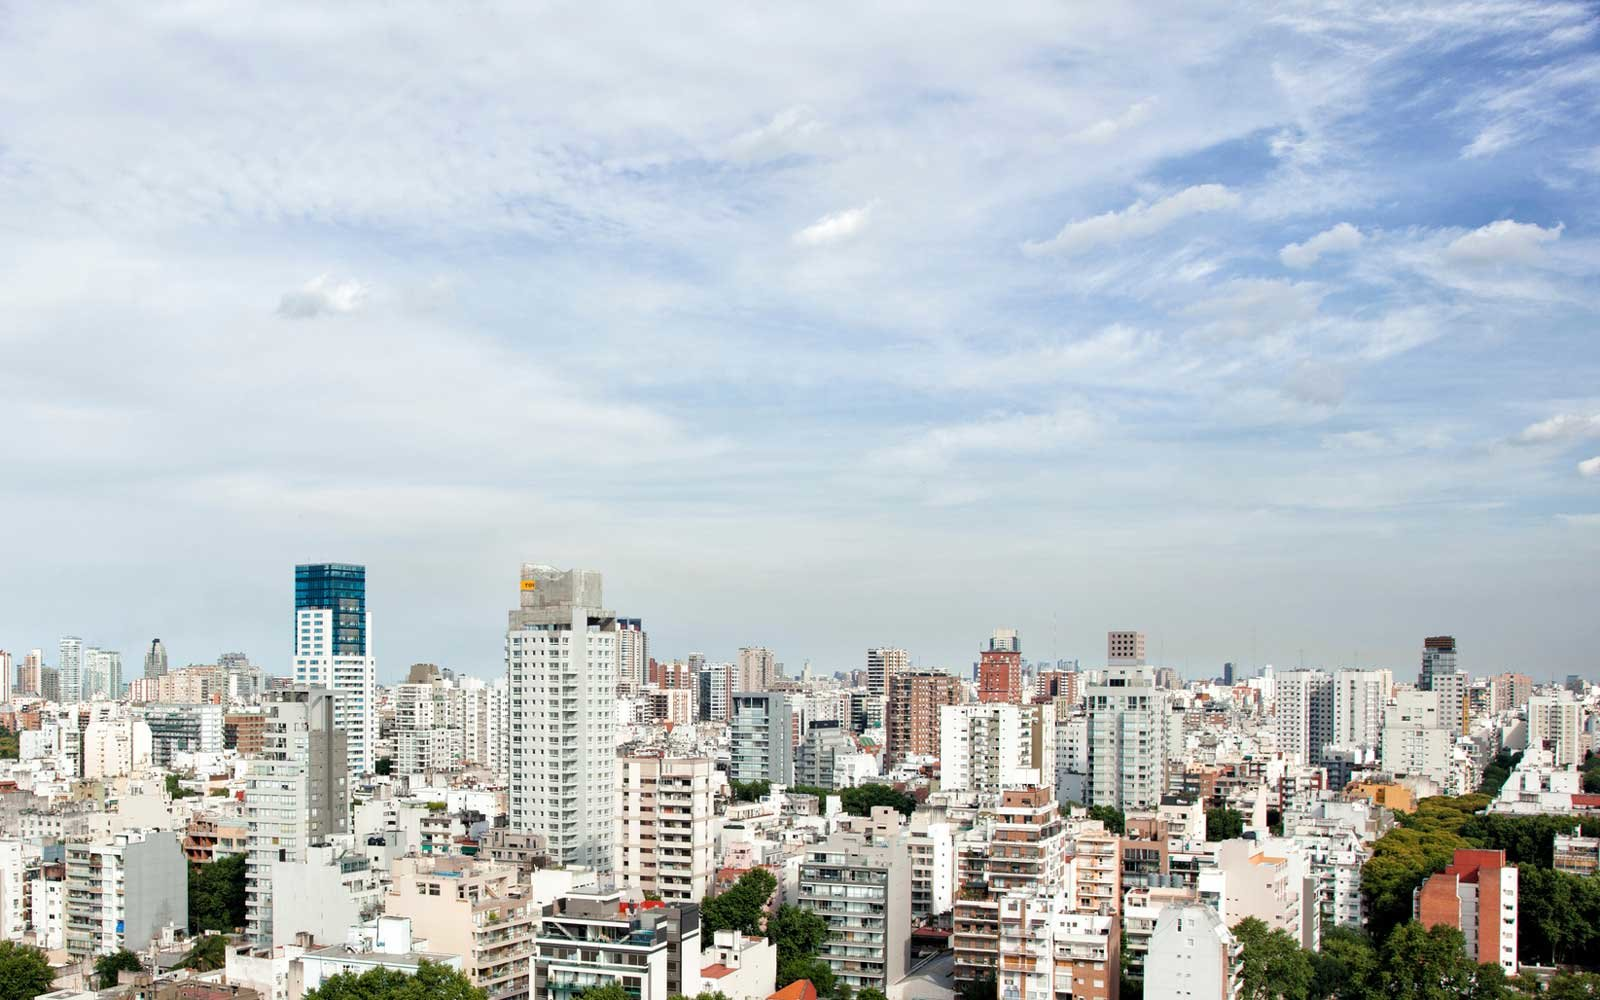 City view of Buenos Aires, Argentina